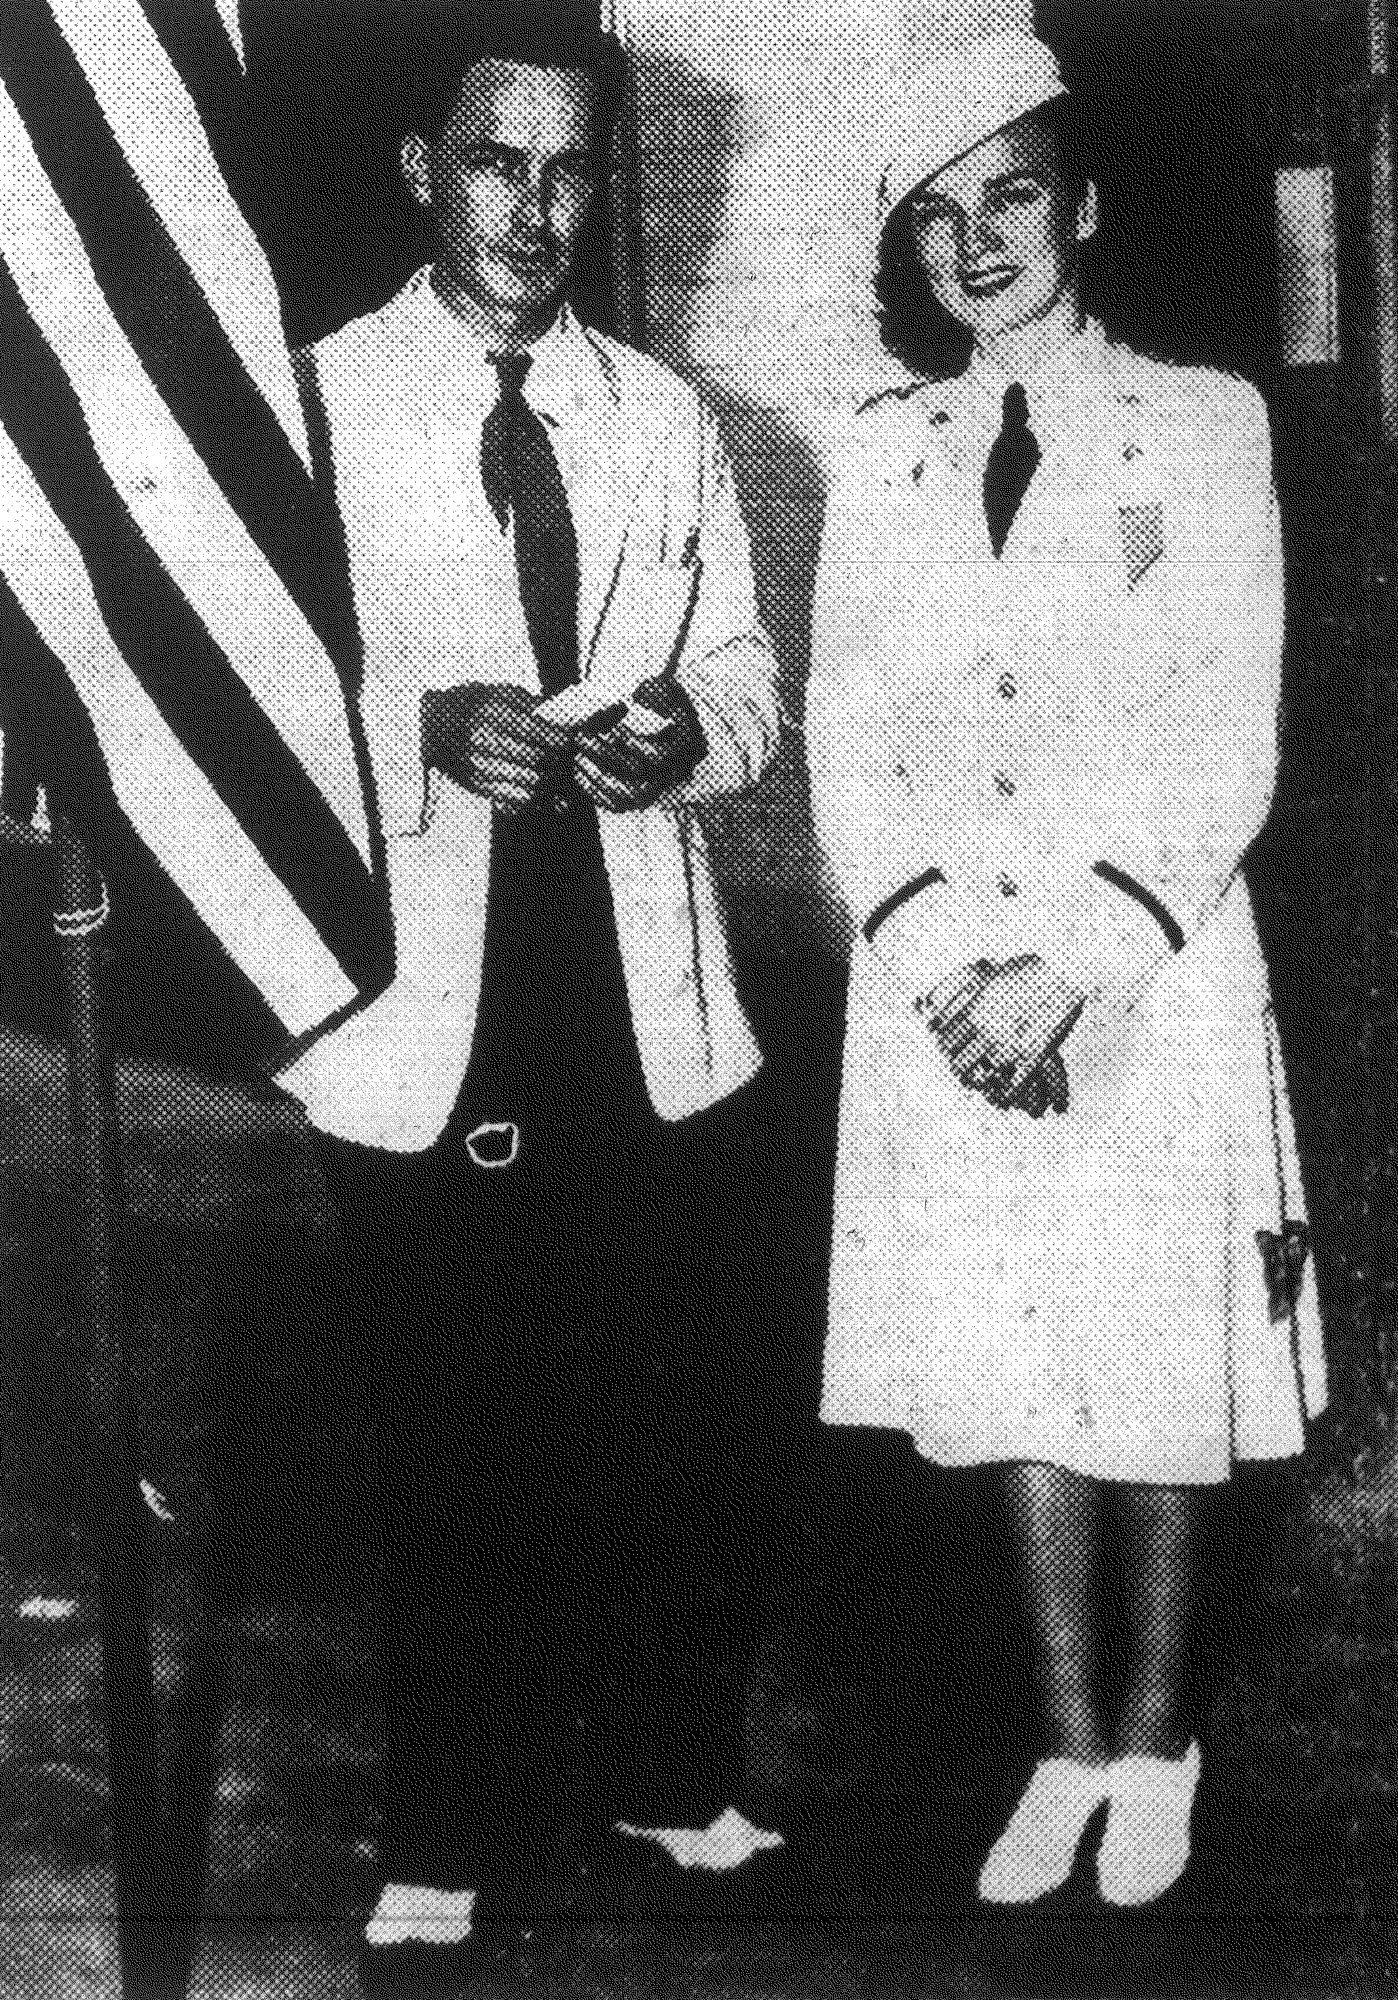 Lt. Juanita Redmond, who escaped capture by the Japanese on Bataan peninsula and at Corregidor, is seen with her brother, Robert.